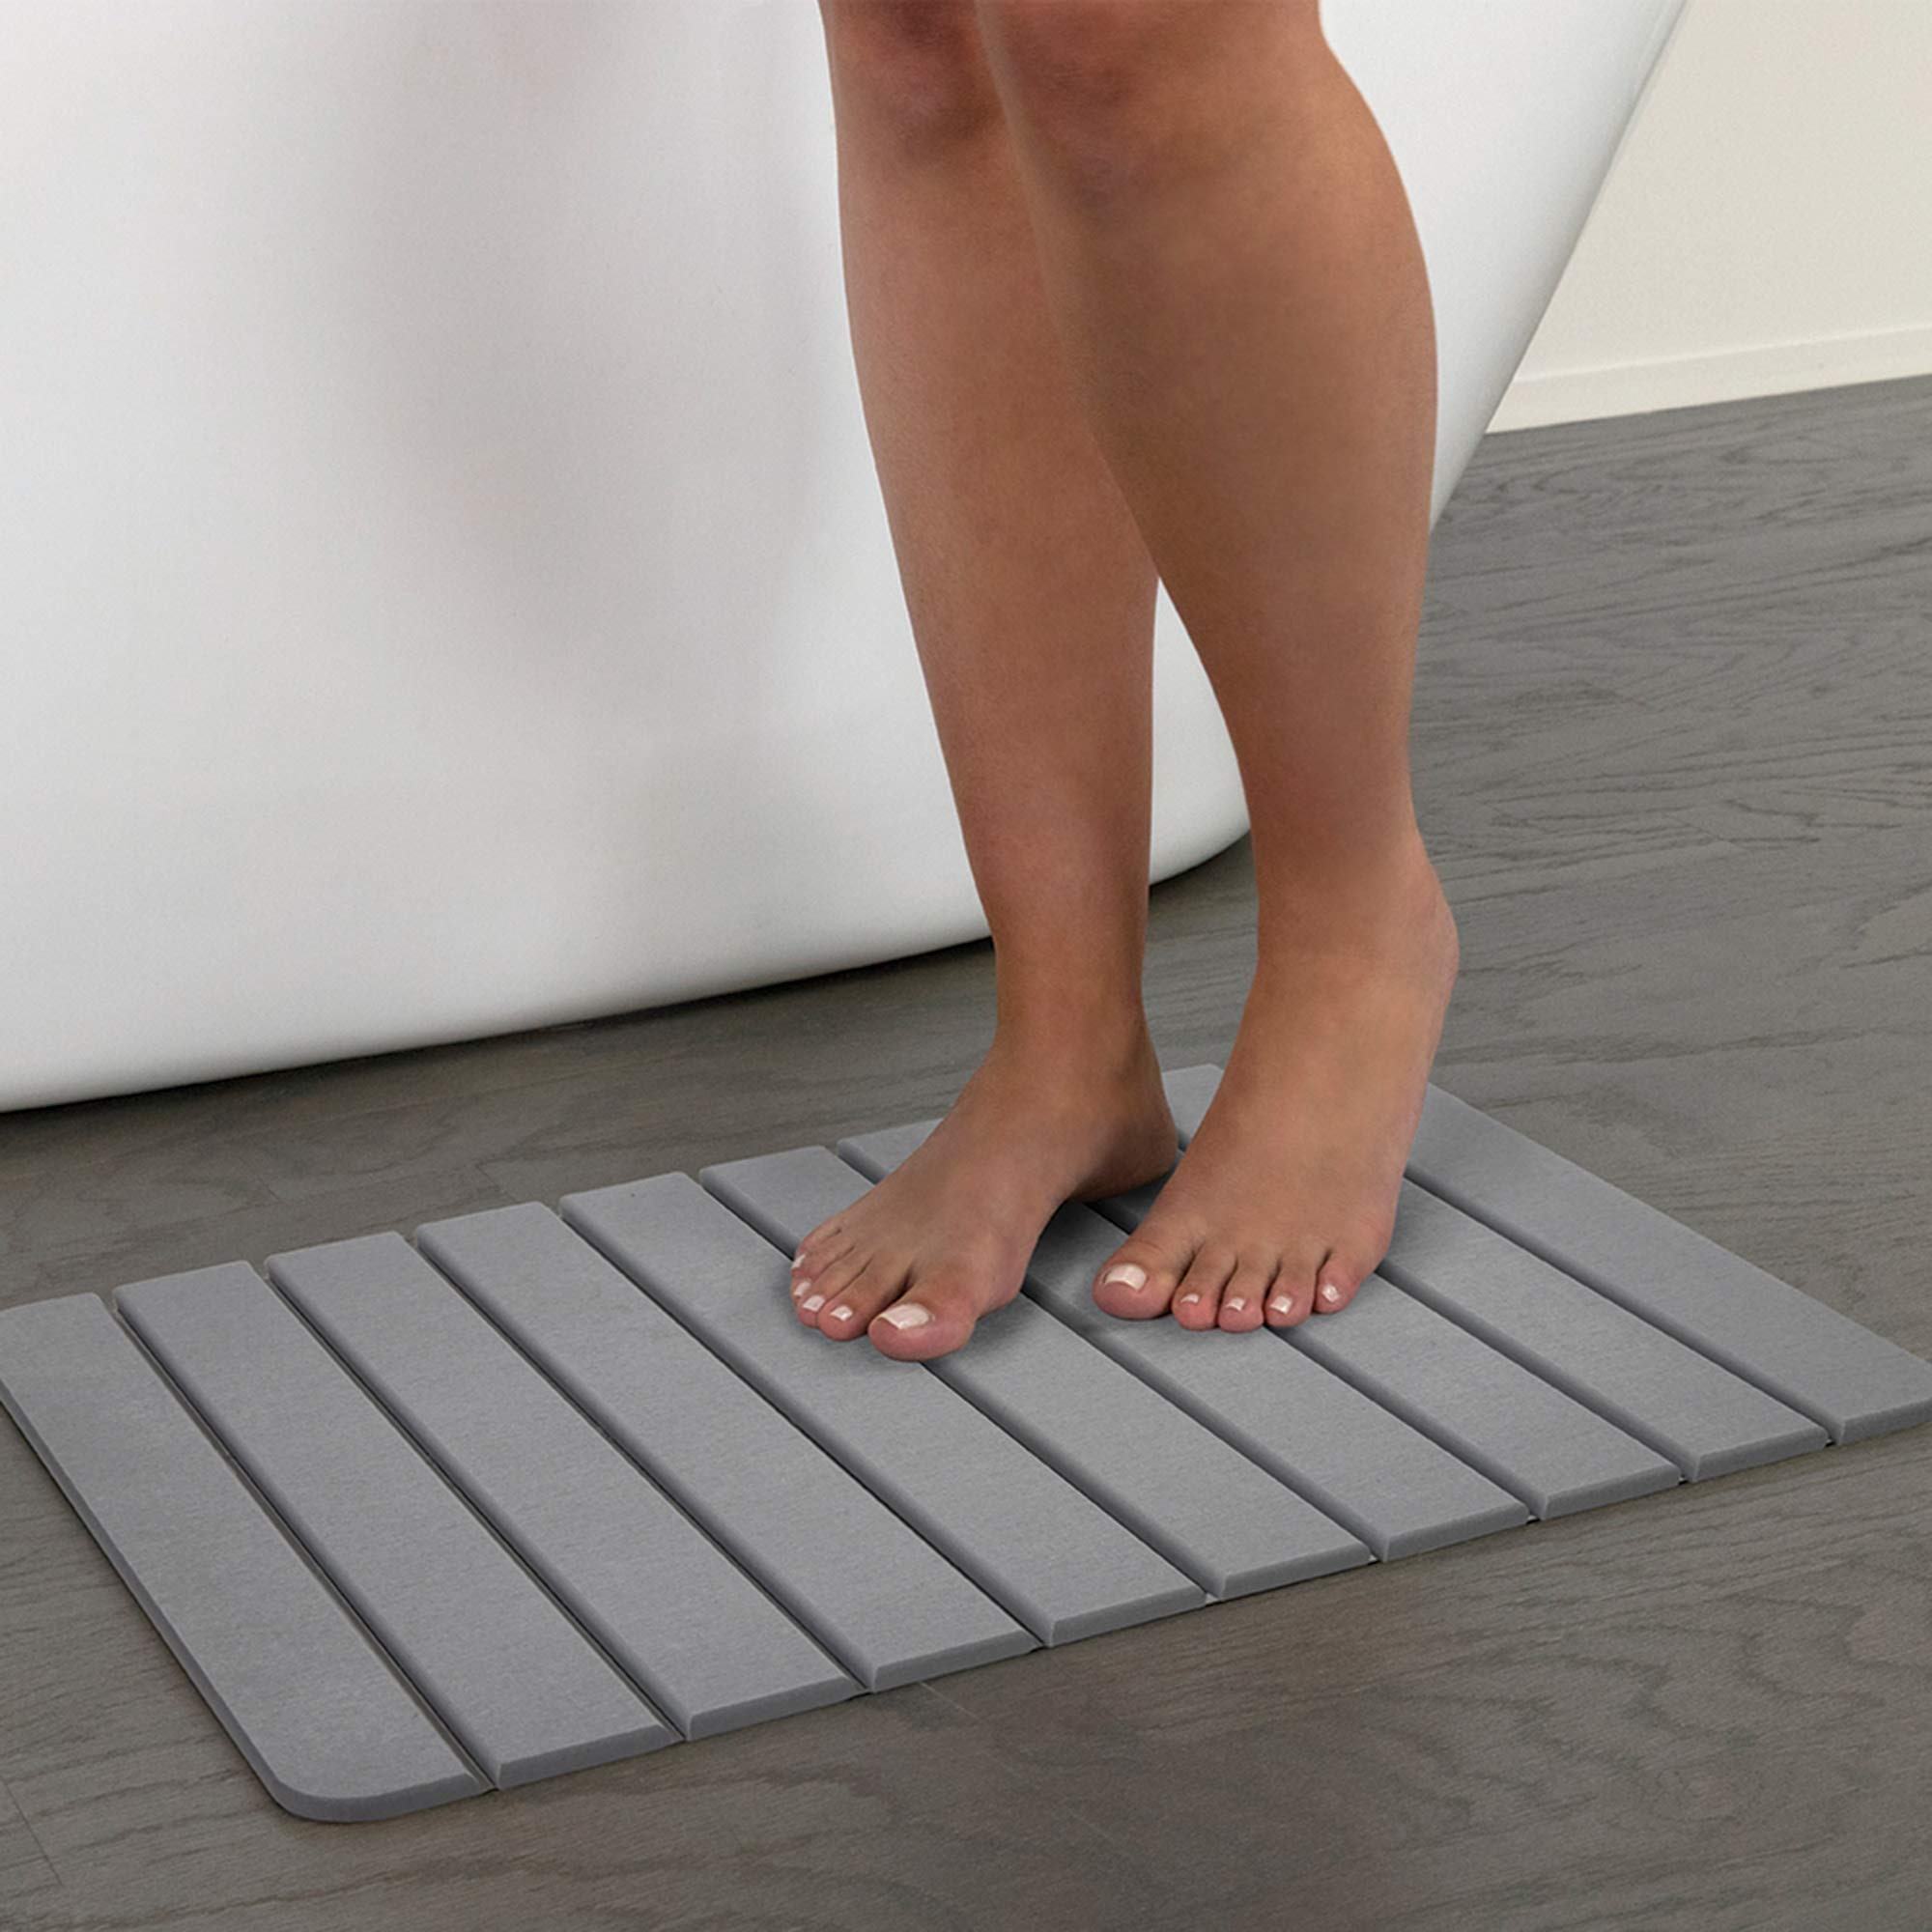 "EXCELL Drystone Slat, Bathroom Floor Non-Slip Absorbent, Quick Drying and Anti-Microbial Bath Mat, 15.35"" X 23.62"", Grey"